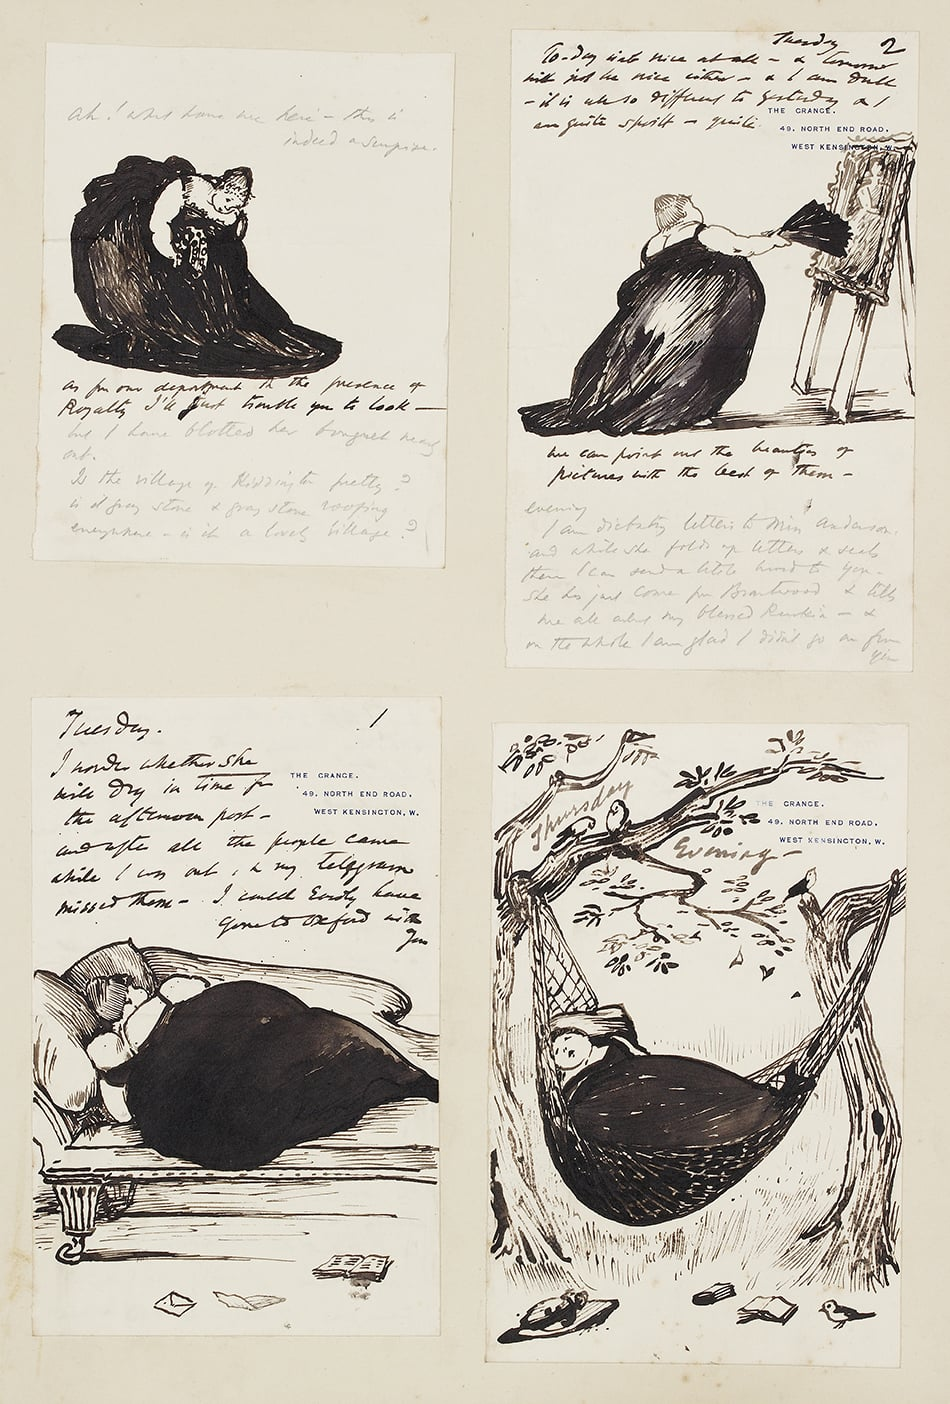 Letters from Burne-Jones to May and Daphne Gaskell. 1) Album of letter from EB-J to Mrs Gaskell, 2) Album of letters from EB-J to Mrs Gaskell I 3) Album of letters from EB-J to Mrs Gaskell II, 4) Album of illustrated letters from EB-J to Mrs Gaskell, 5) D